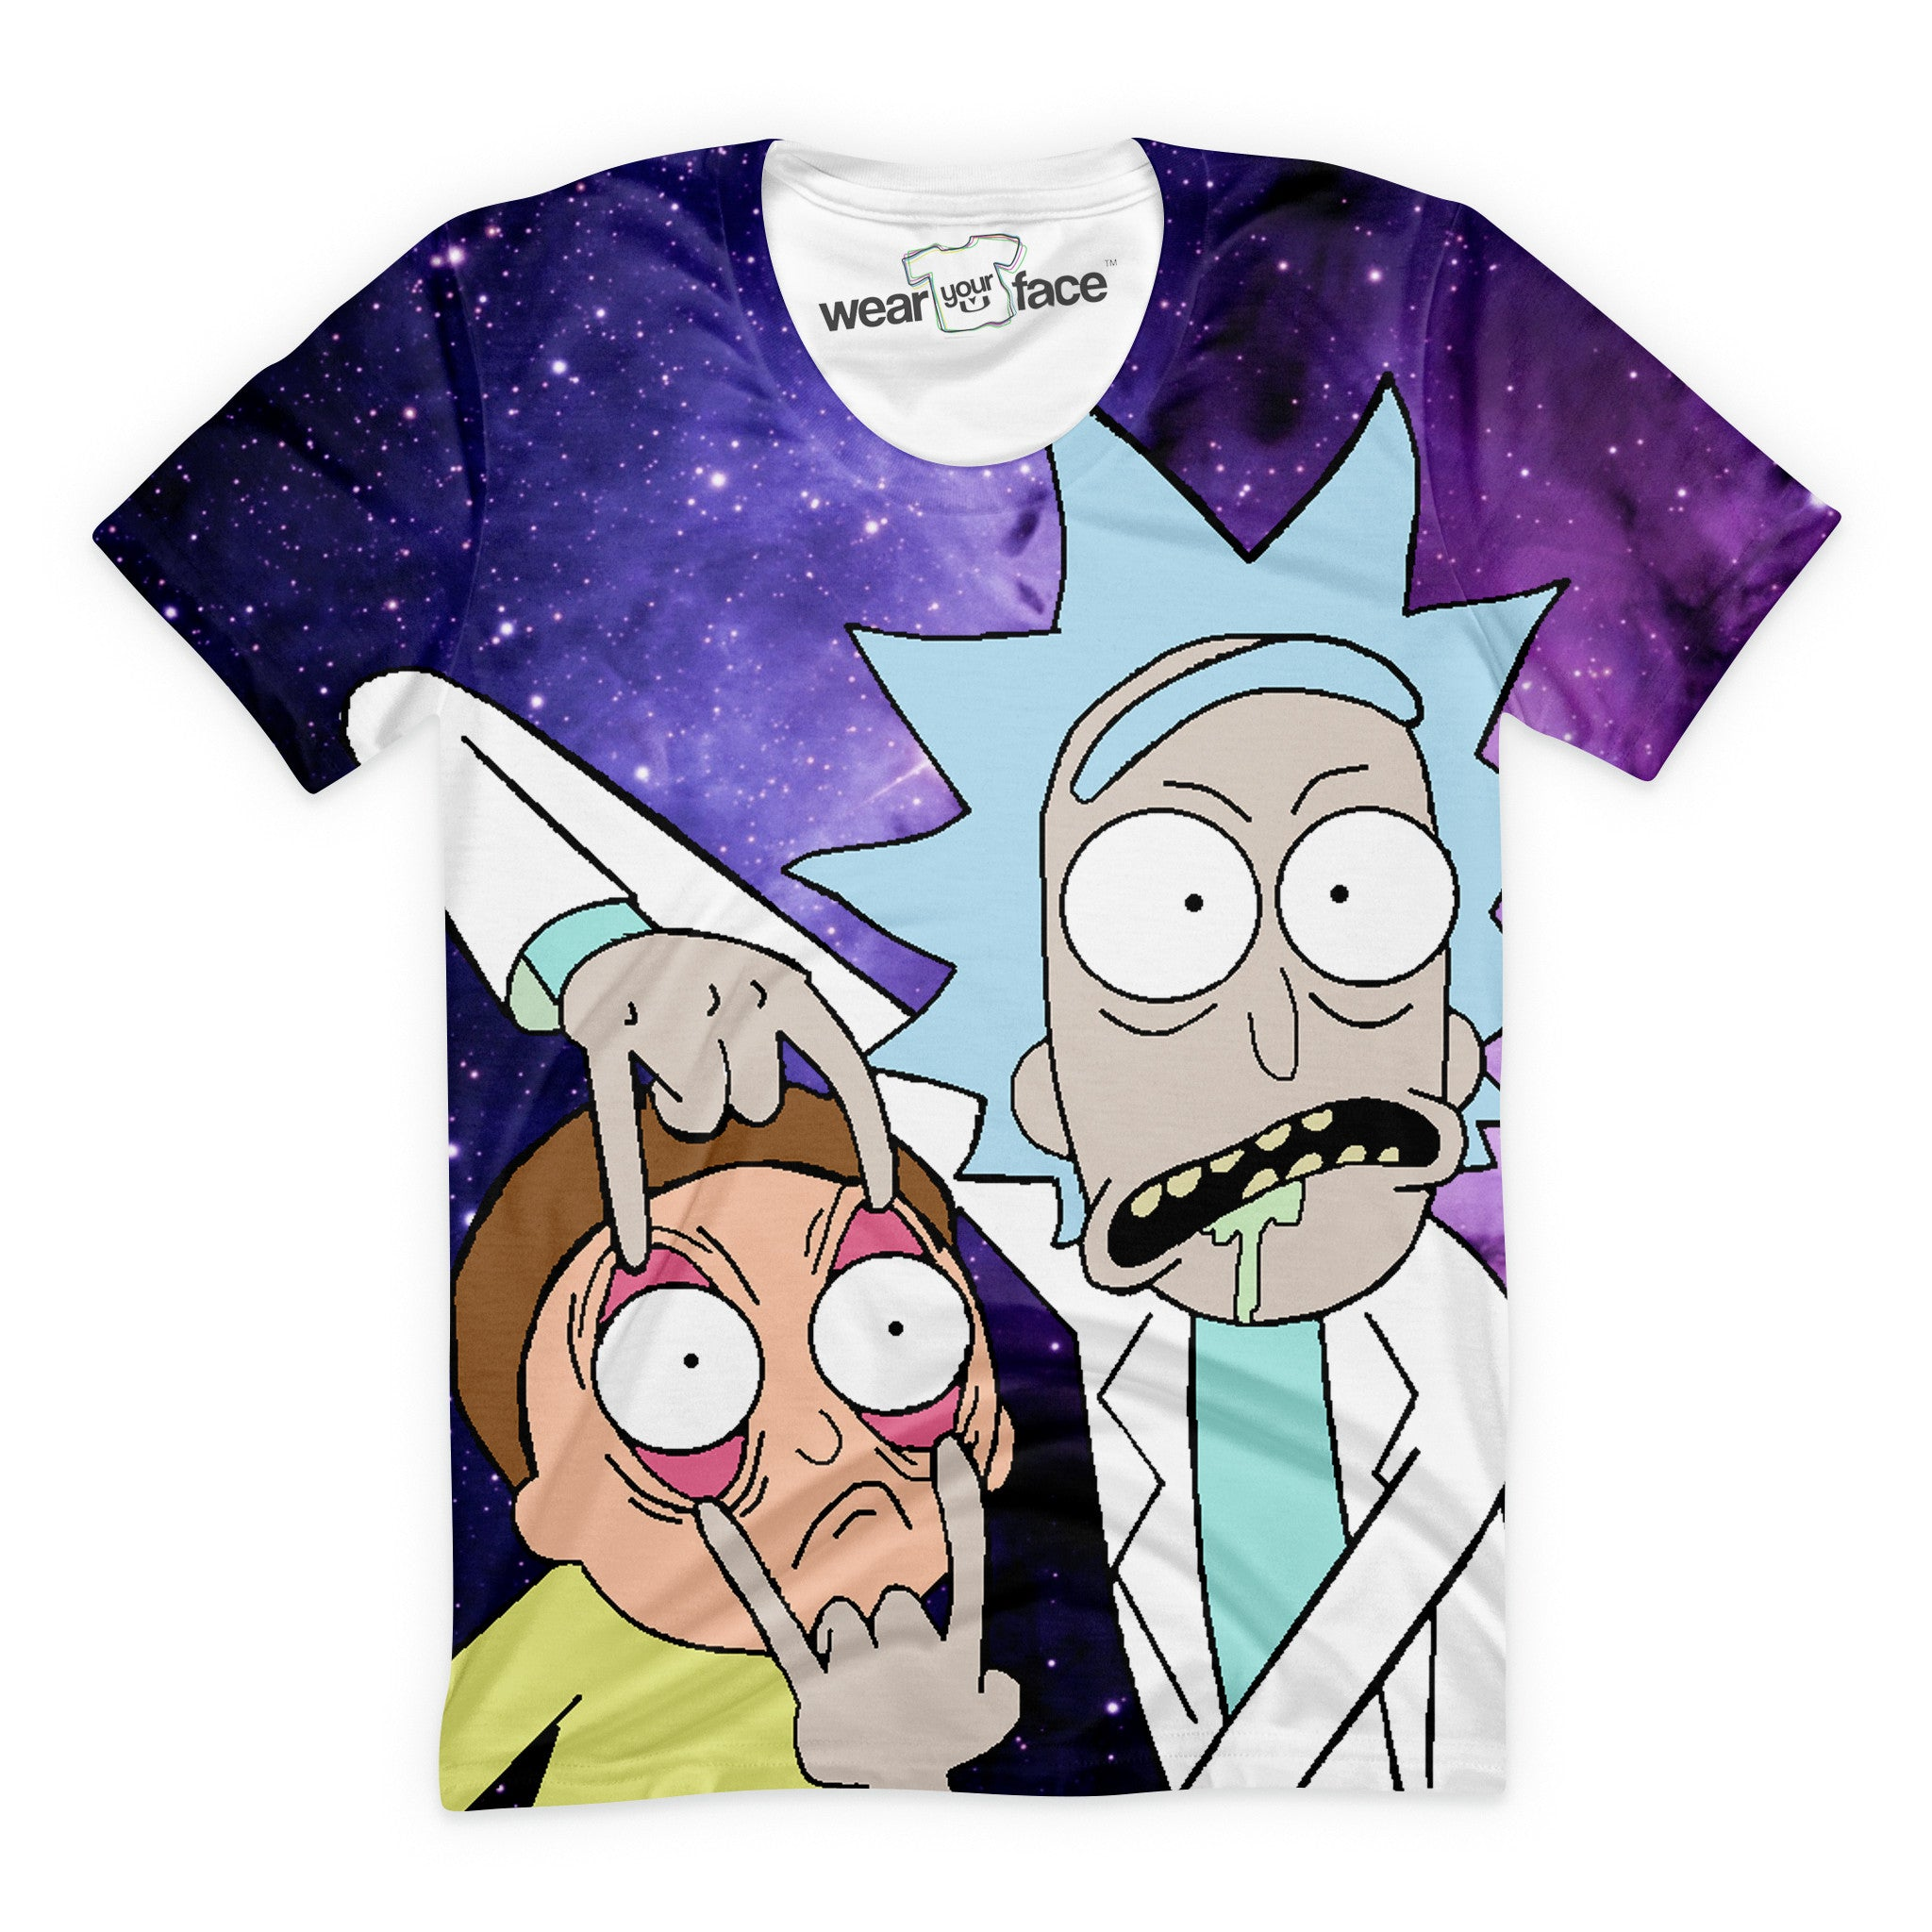 The Rick And Morty Intergalactic T-Shirt